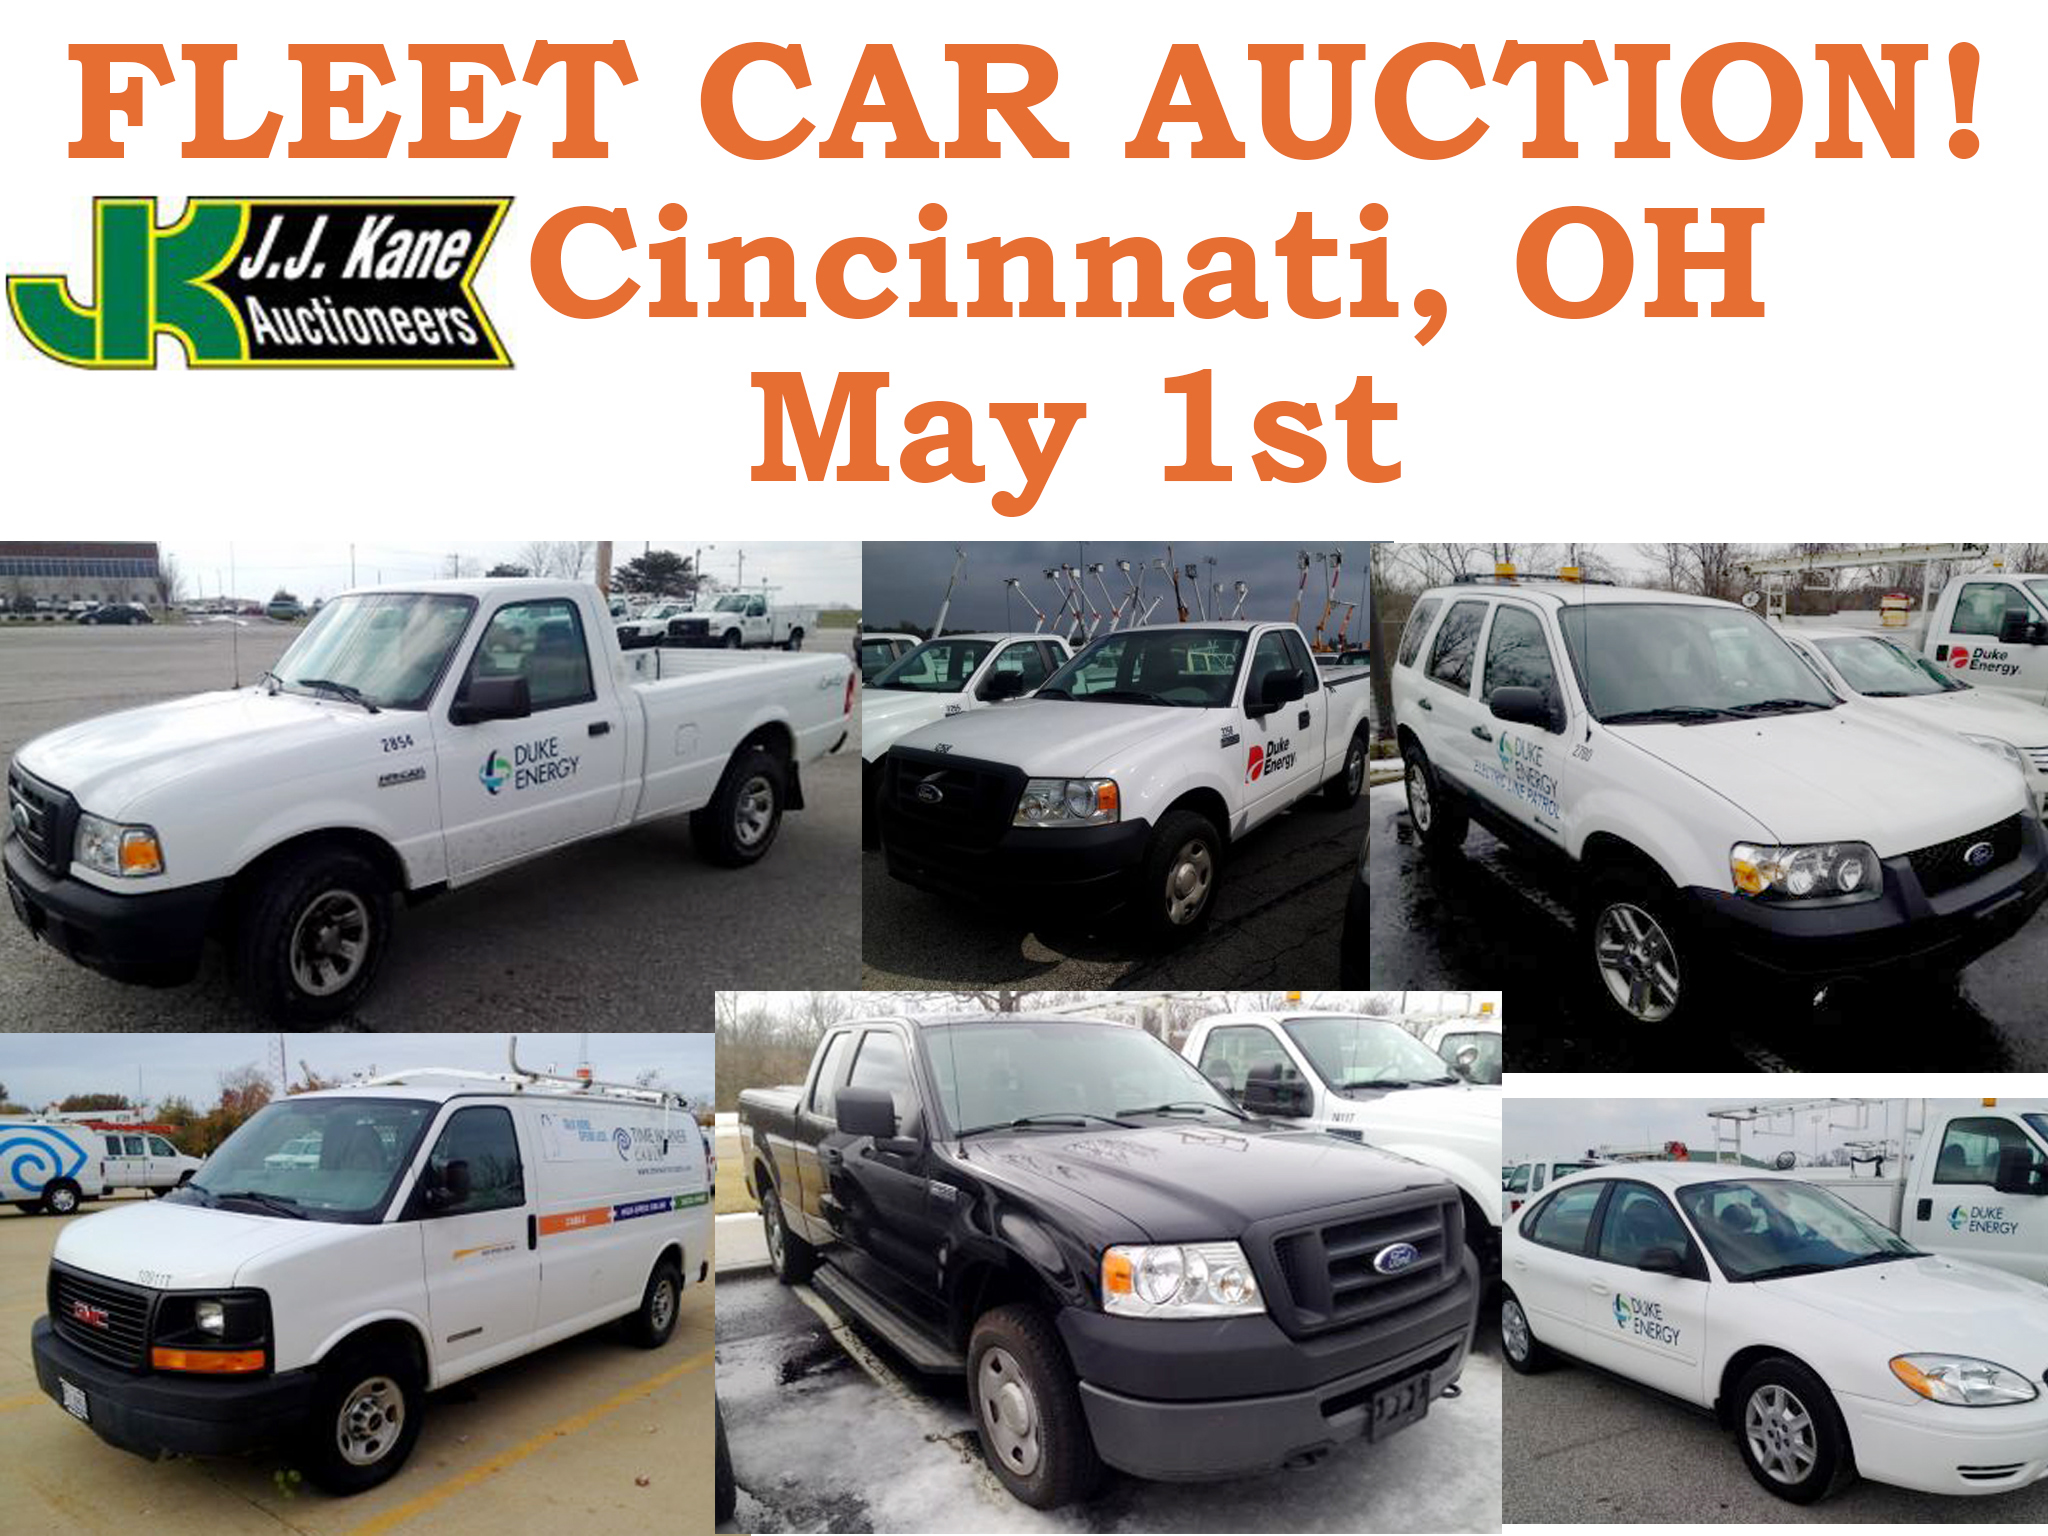 cincinnati oh local public auction thursday may 1st 2014 selling fleet vehicles from duke. Black Bedroom Furniture Sets. Home Design Ideas